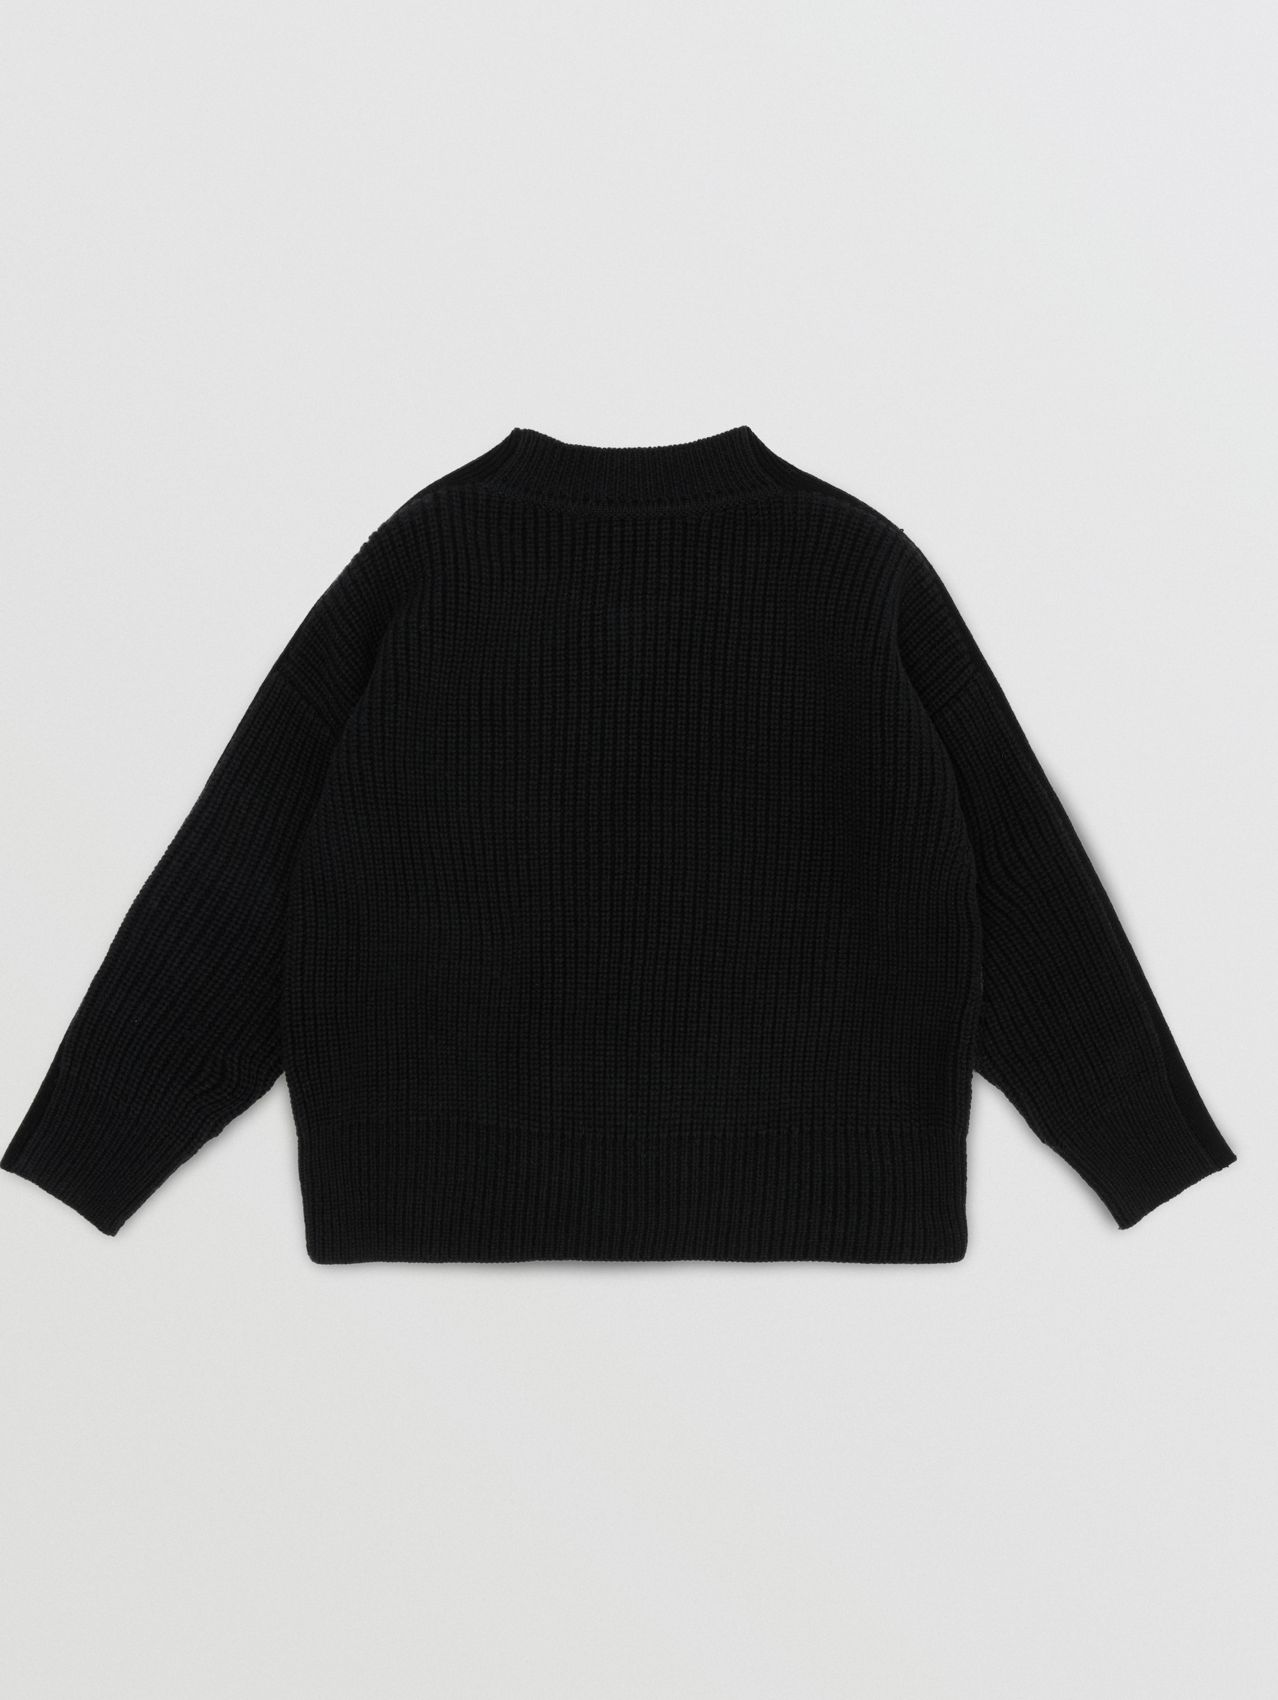 Embroidered Logo Cable Knit Wool Blend Sweater in White/black